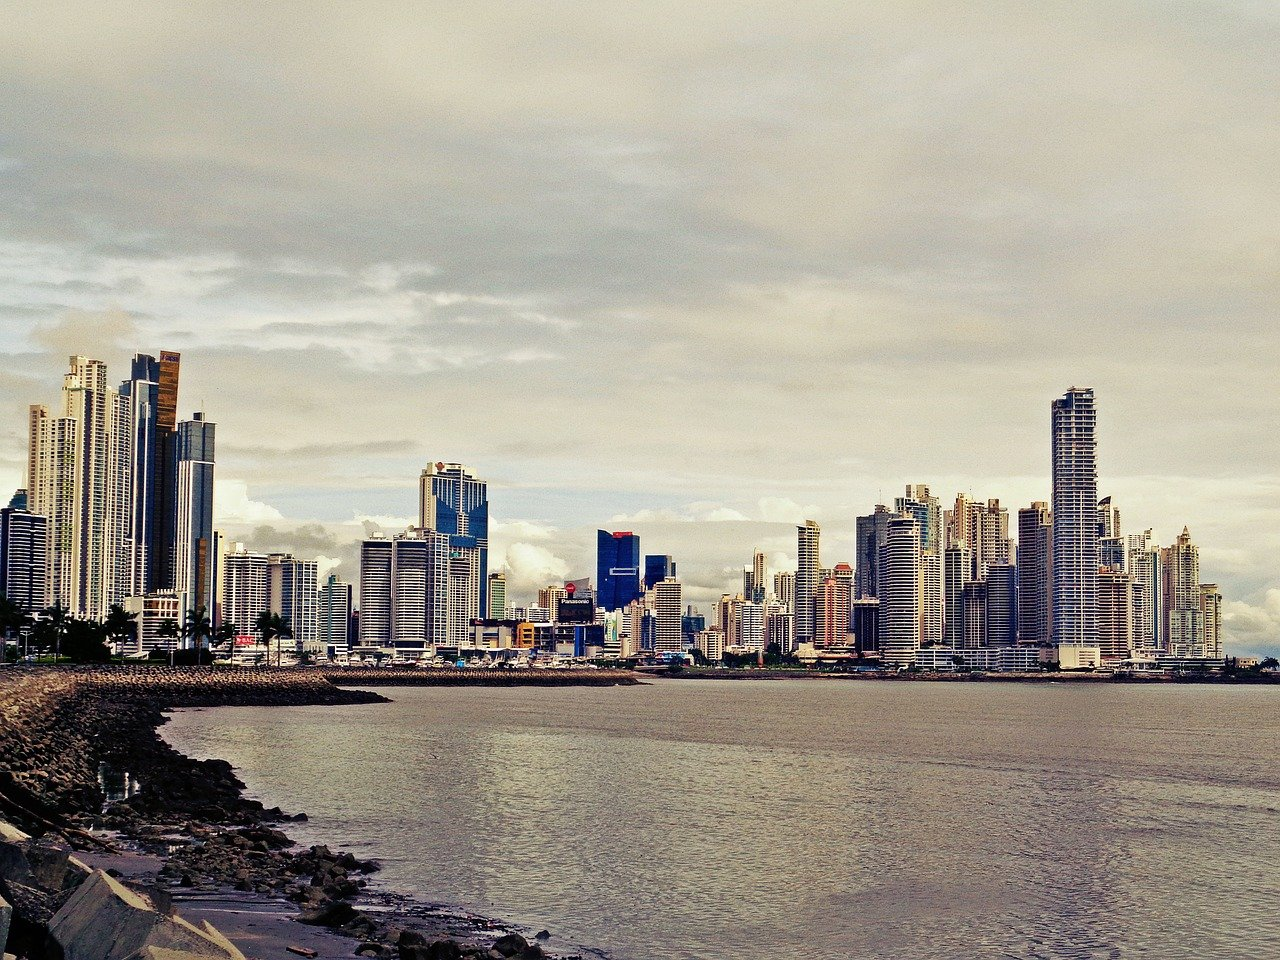 New President in Panama: What Does This Mean for Business?